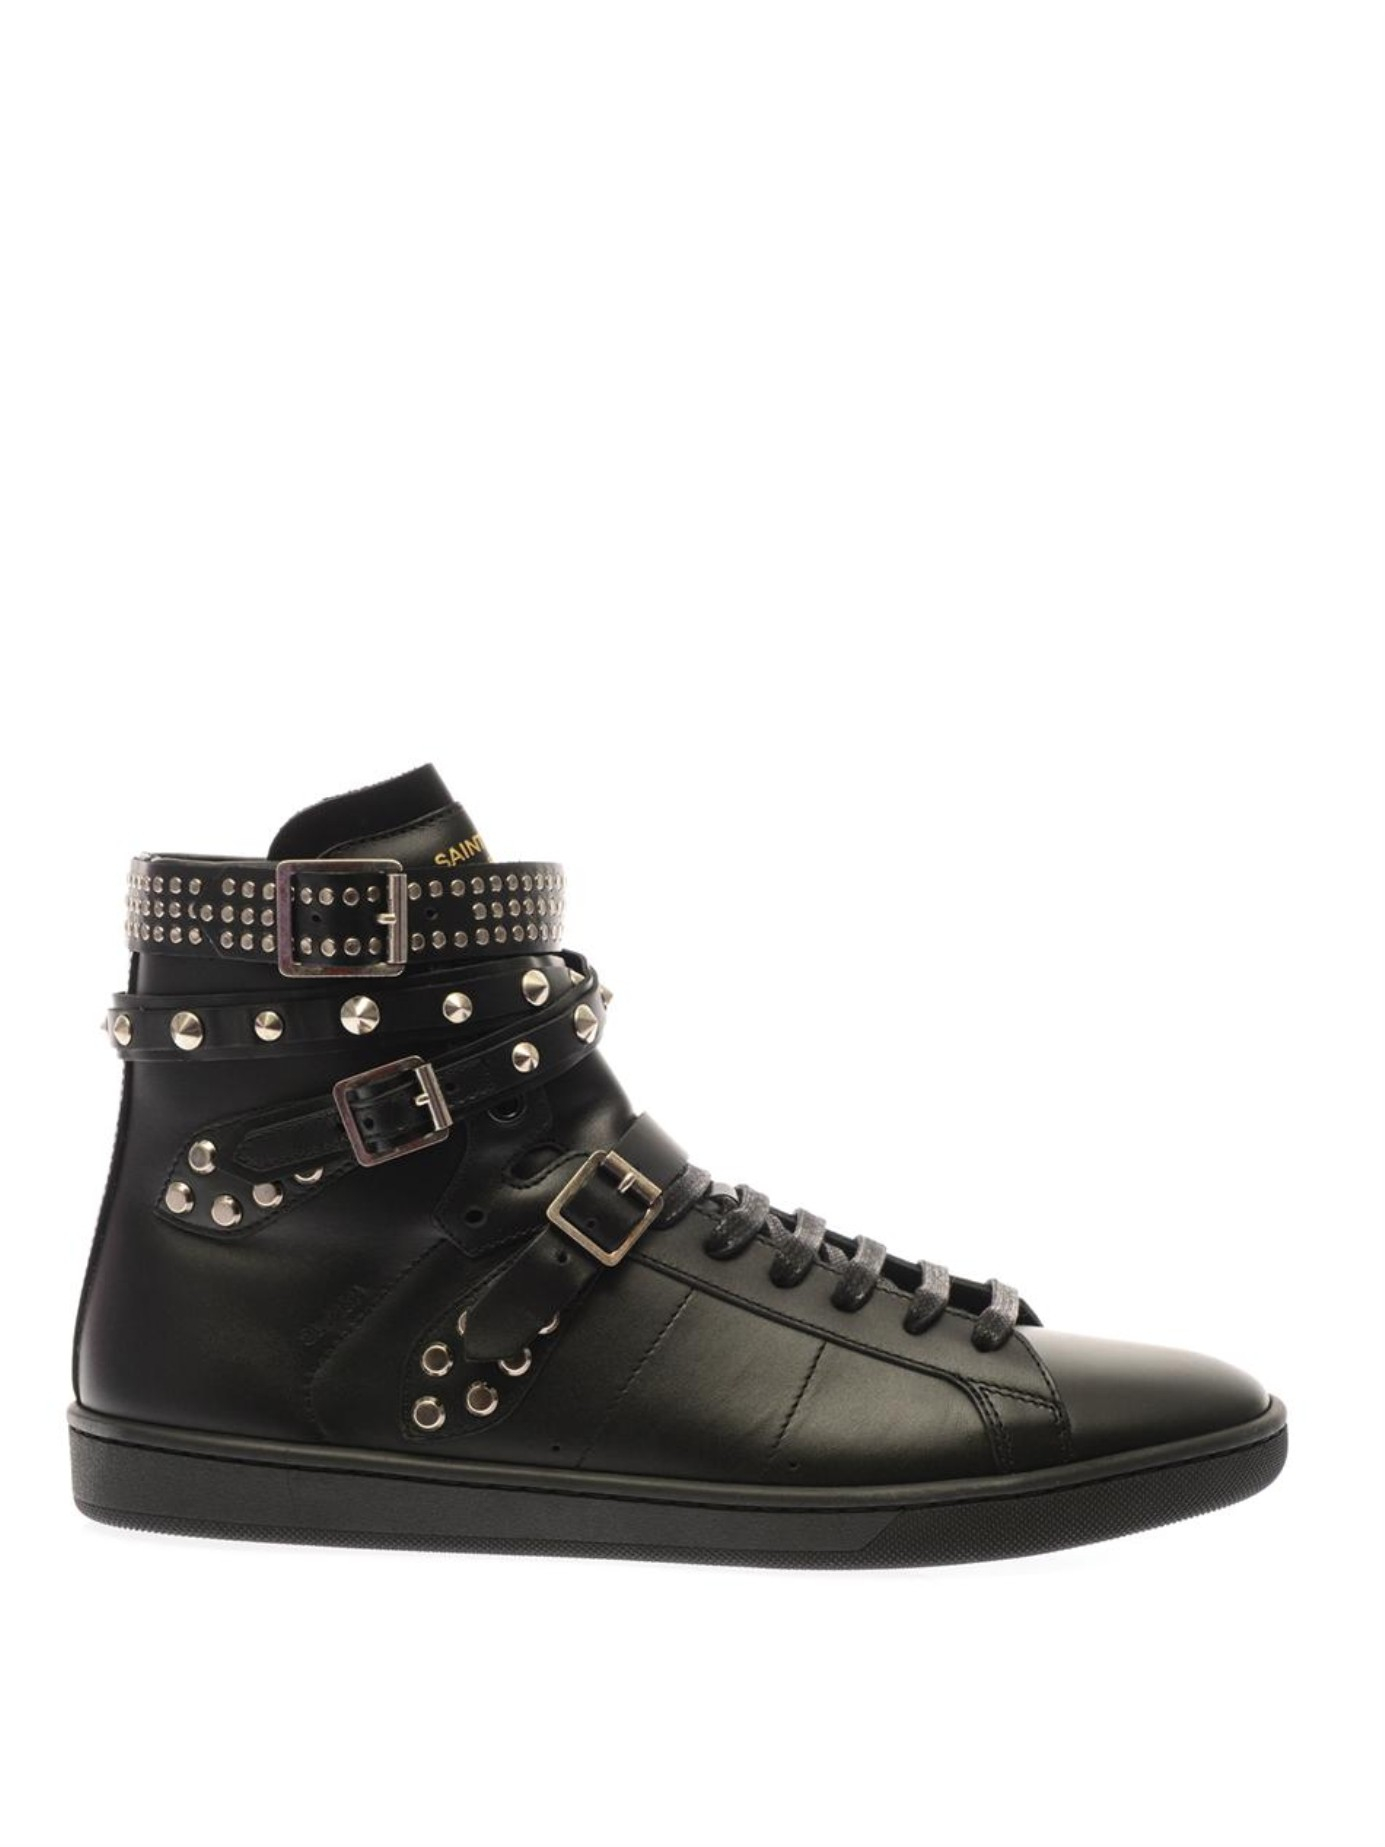 saint laurent wolly studded high top leather sneakers in black lyst. Black Bedroom Furniture Sets. Home Design Ideas